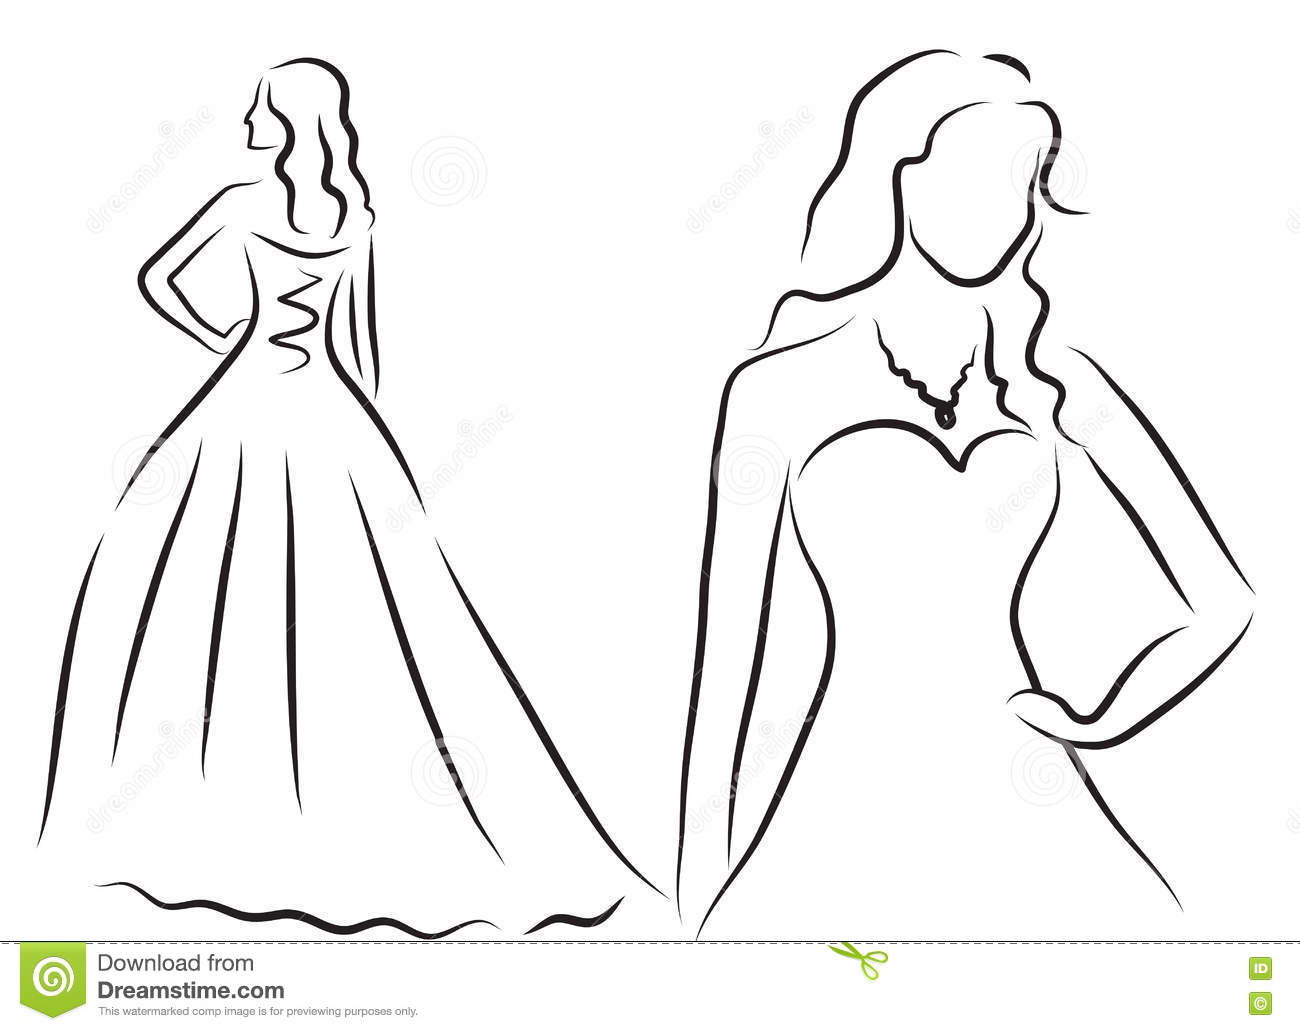 Wedding invitations with silhouettes clothing